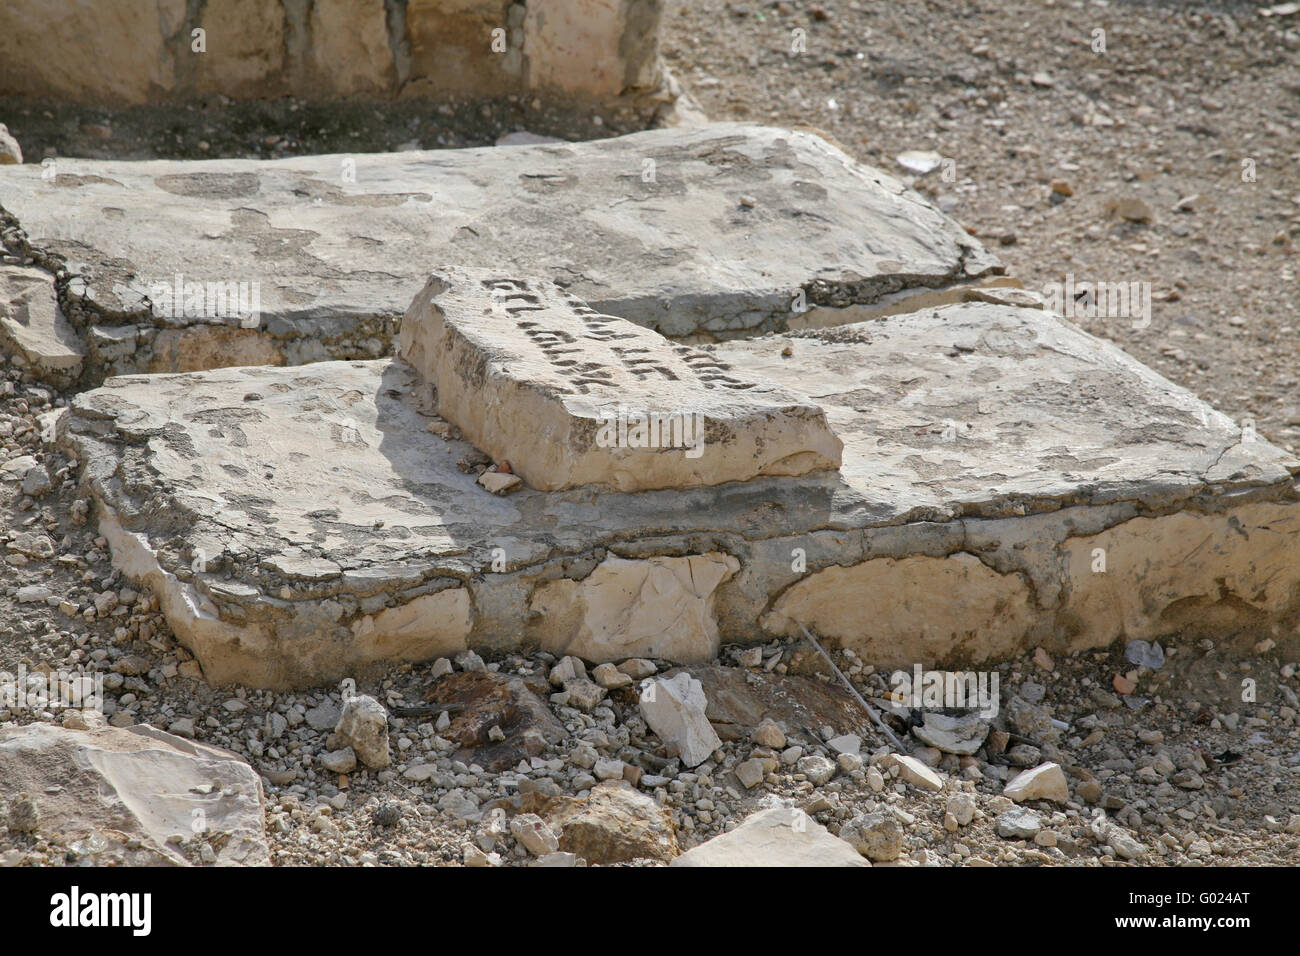 The Jewish cemetery on the Mount of Olives - Stock Image